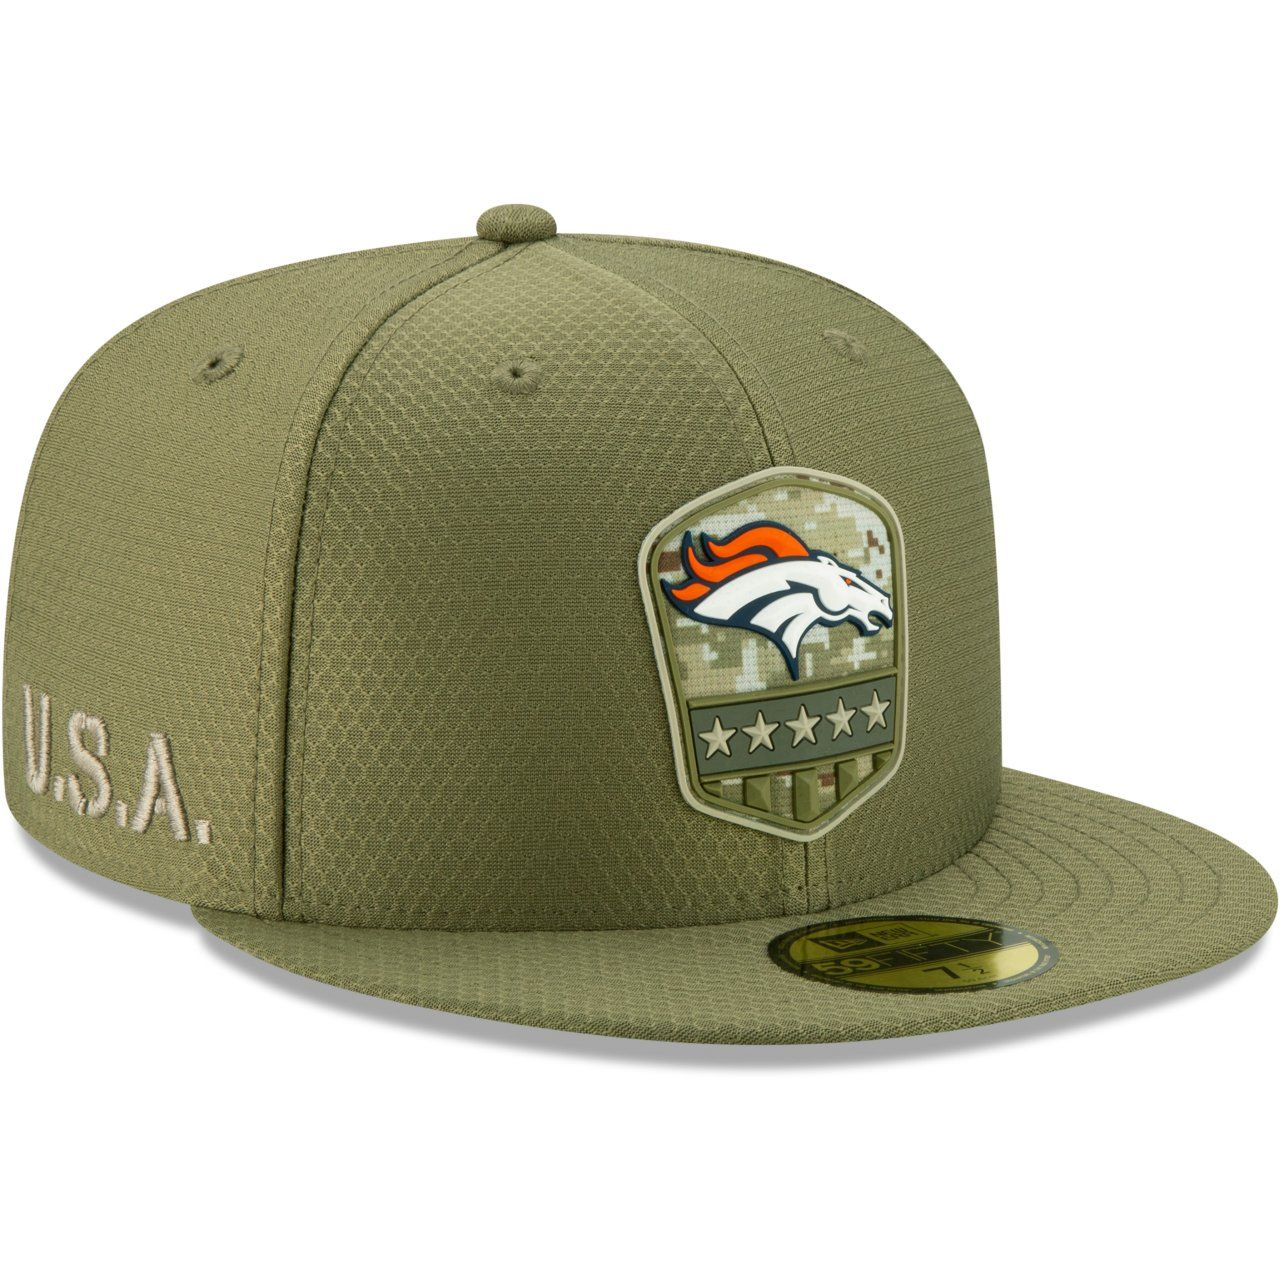 amfoo - New Era 59Fifty Cap - Salute to Service NFL Denver Broncos